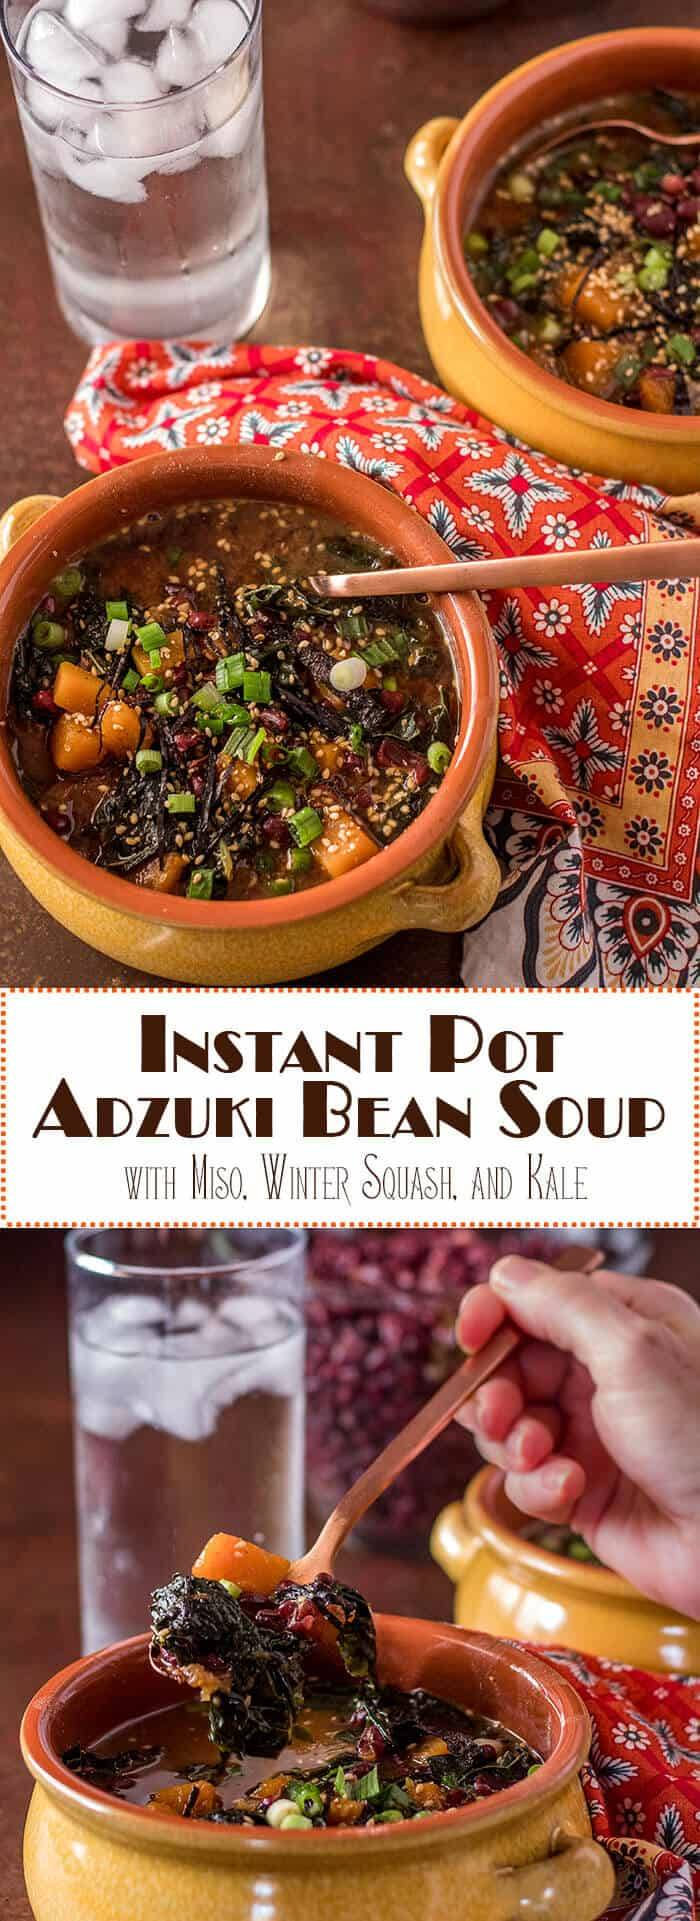 Adzuki beans are not just for sweet Asian-inspired treats! Instant Pot Adzuki Bean Soup with Miso, Winter Squash, and Kale combines nutrient-rich adzuki beans with a Japanese-style miso broth and hearty fiber-rich vegetables in a soul-warming vegan and gluten free soup... Bob's Red Mill | Instant Pot Recipes | Vegan Soups | Adzuki Beans | Vegetarian | Gluten Free